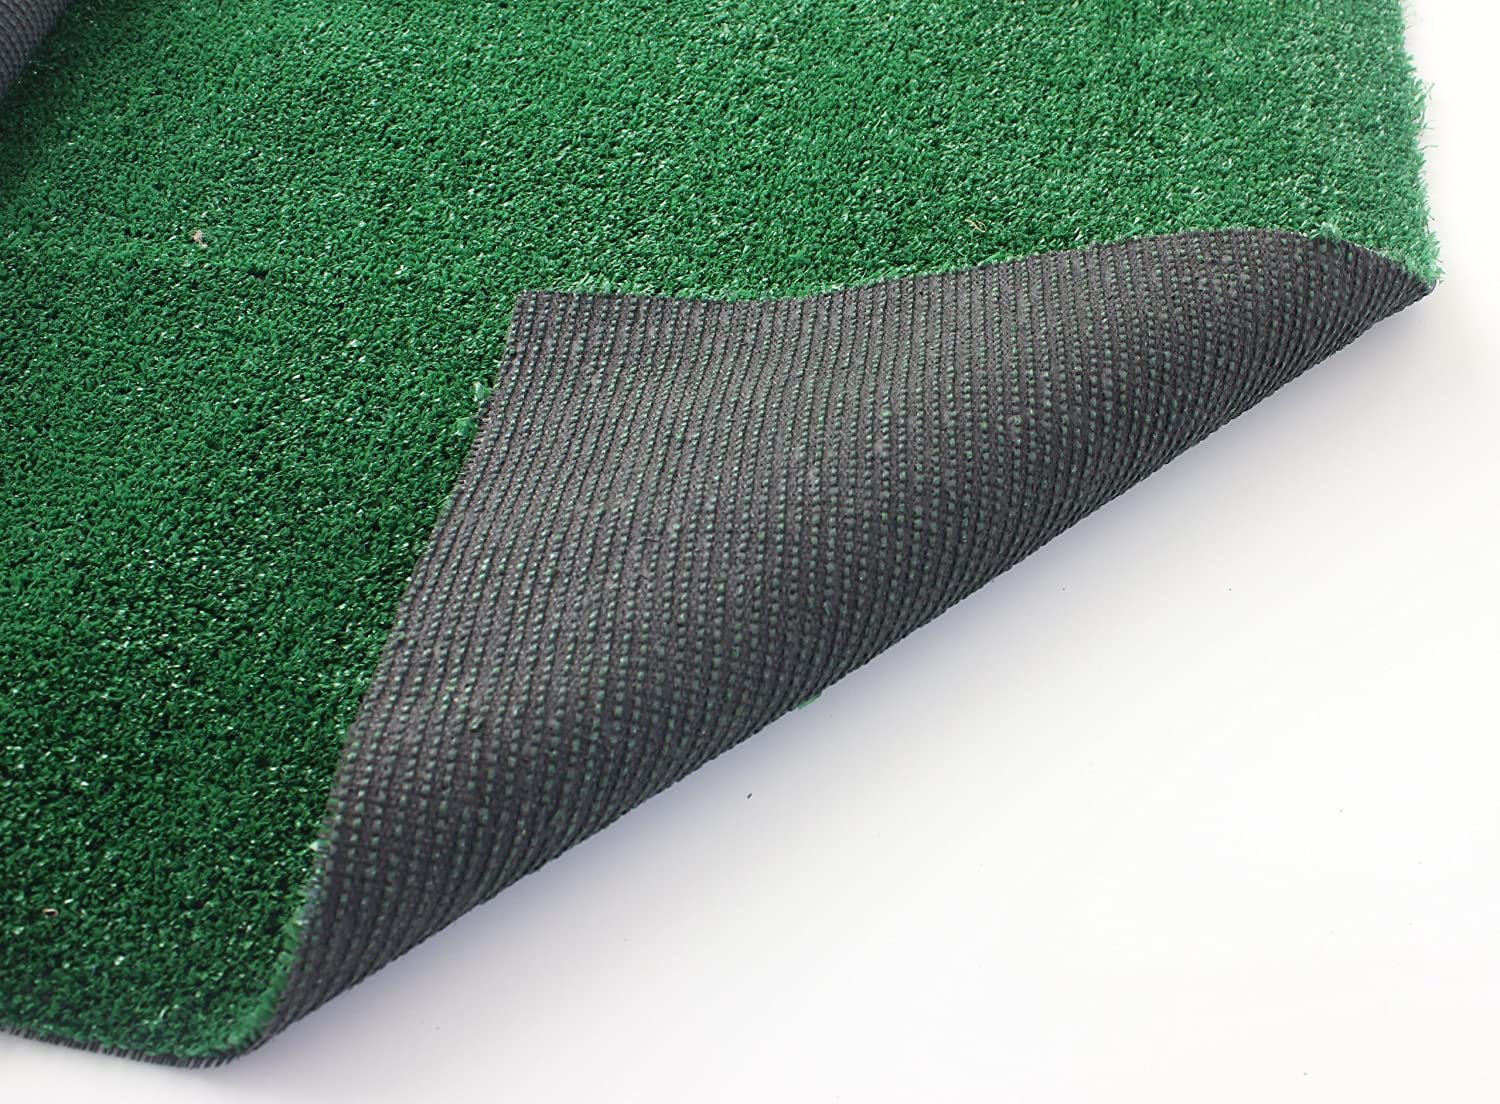 Amazon.com : 12\'x9\' LAWN GREEN INDOOR/OUTDOOR ARTIFICIAL TURF ...